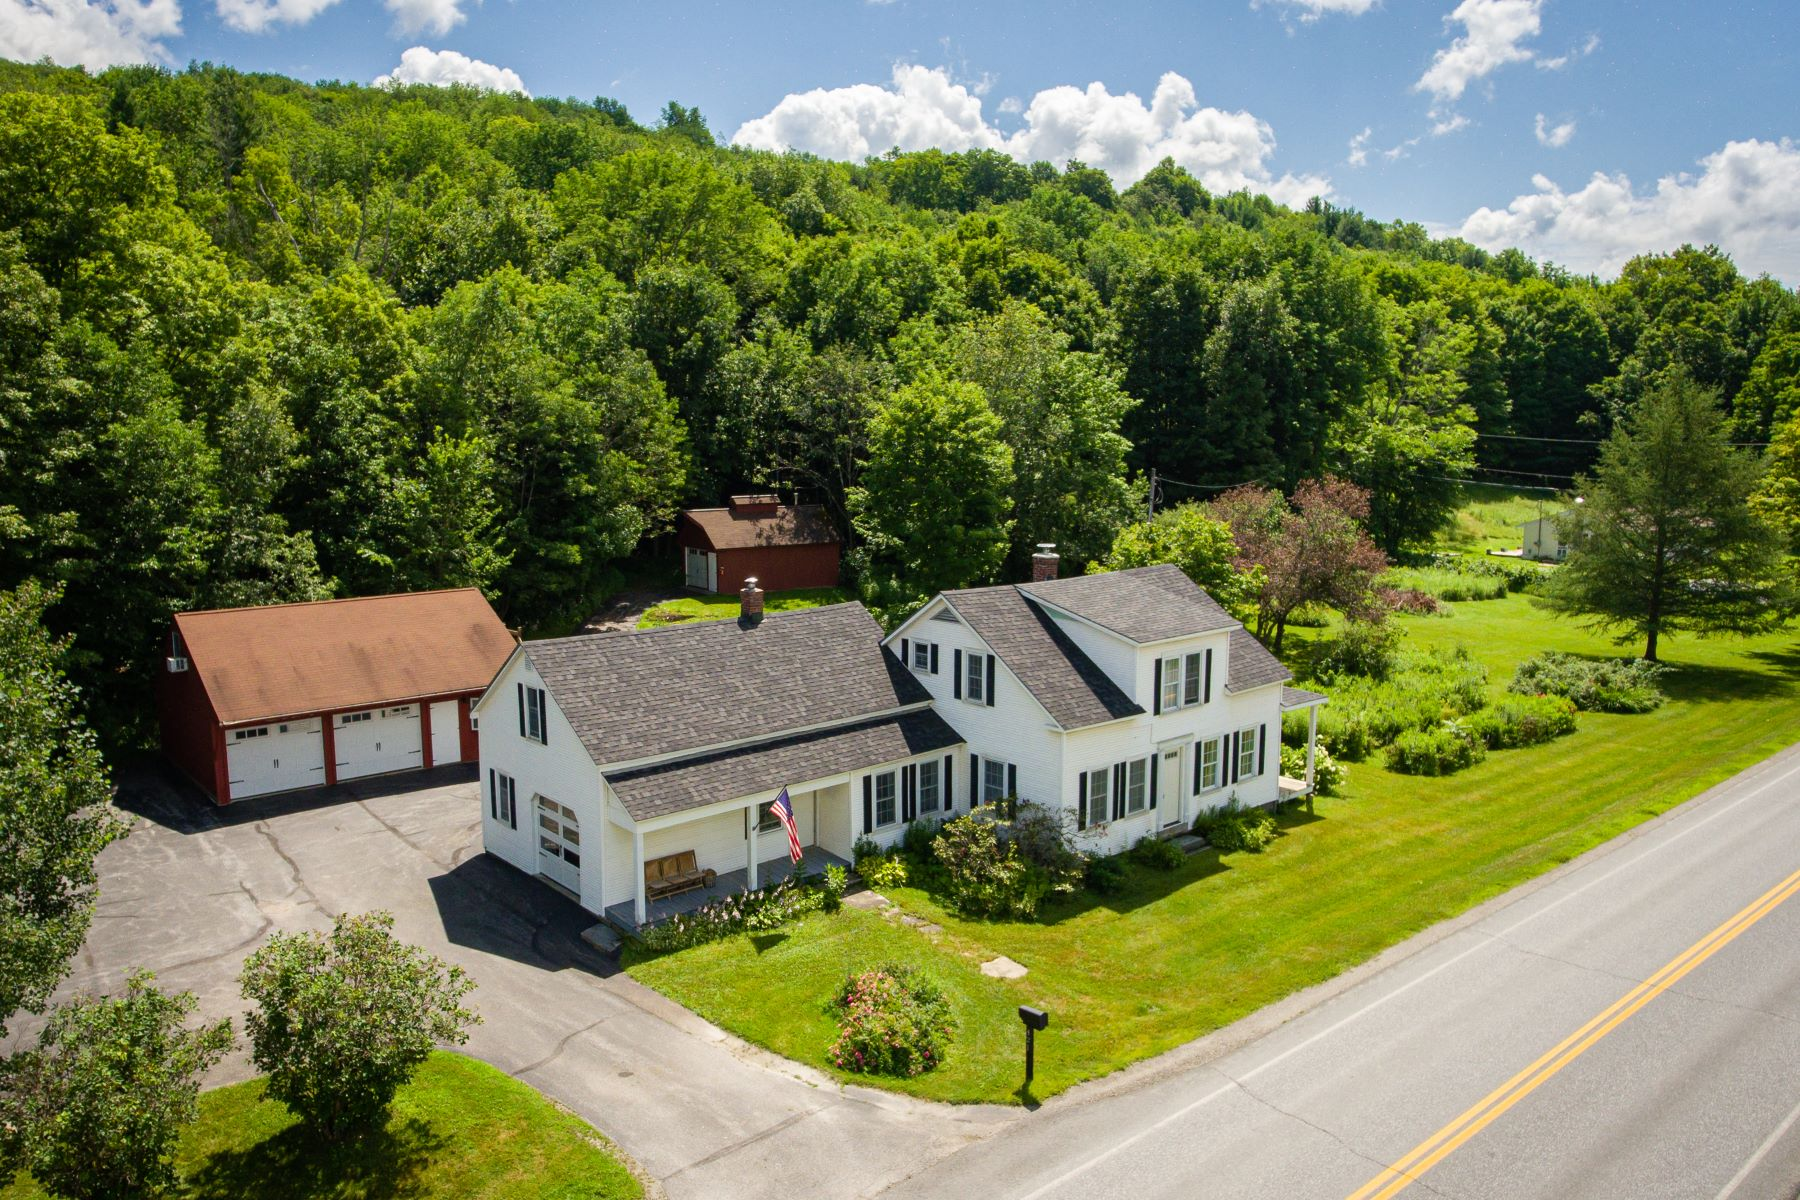 Single Family Homes for Sale at 421 Browns Trace Road, Jericho 421 Browns Trace Rd Jericho, Vermont 05465 United States